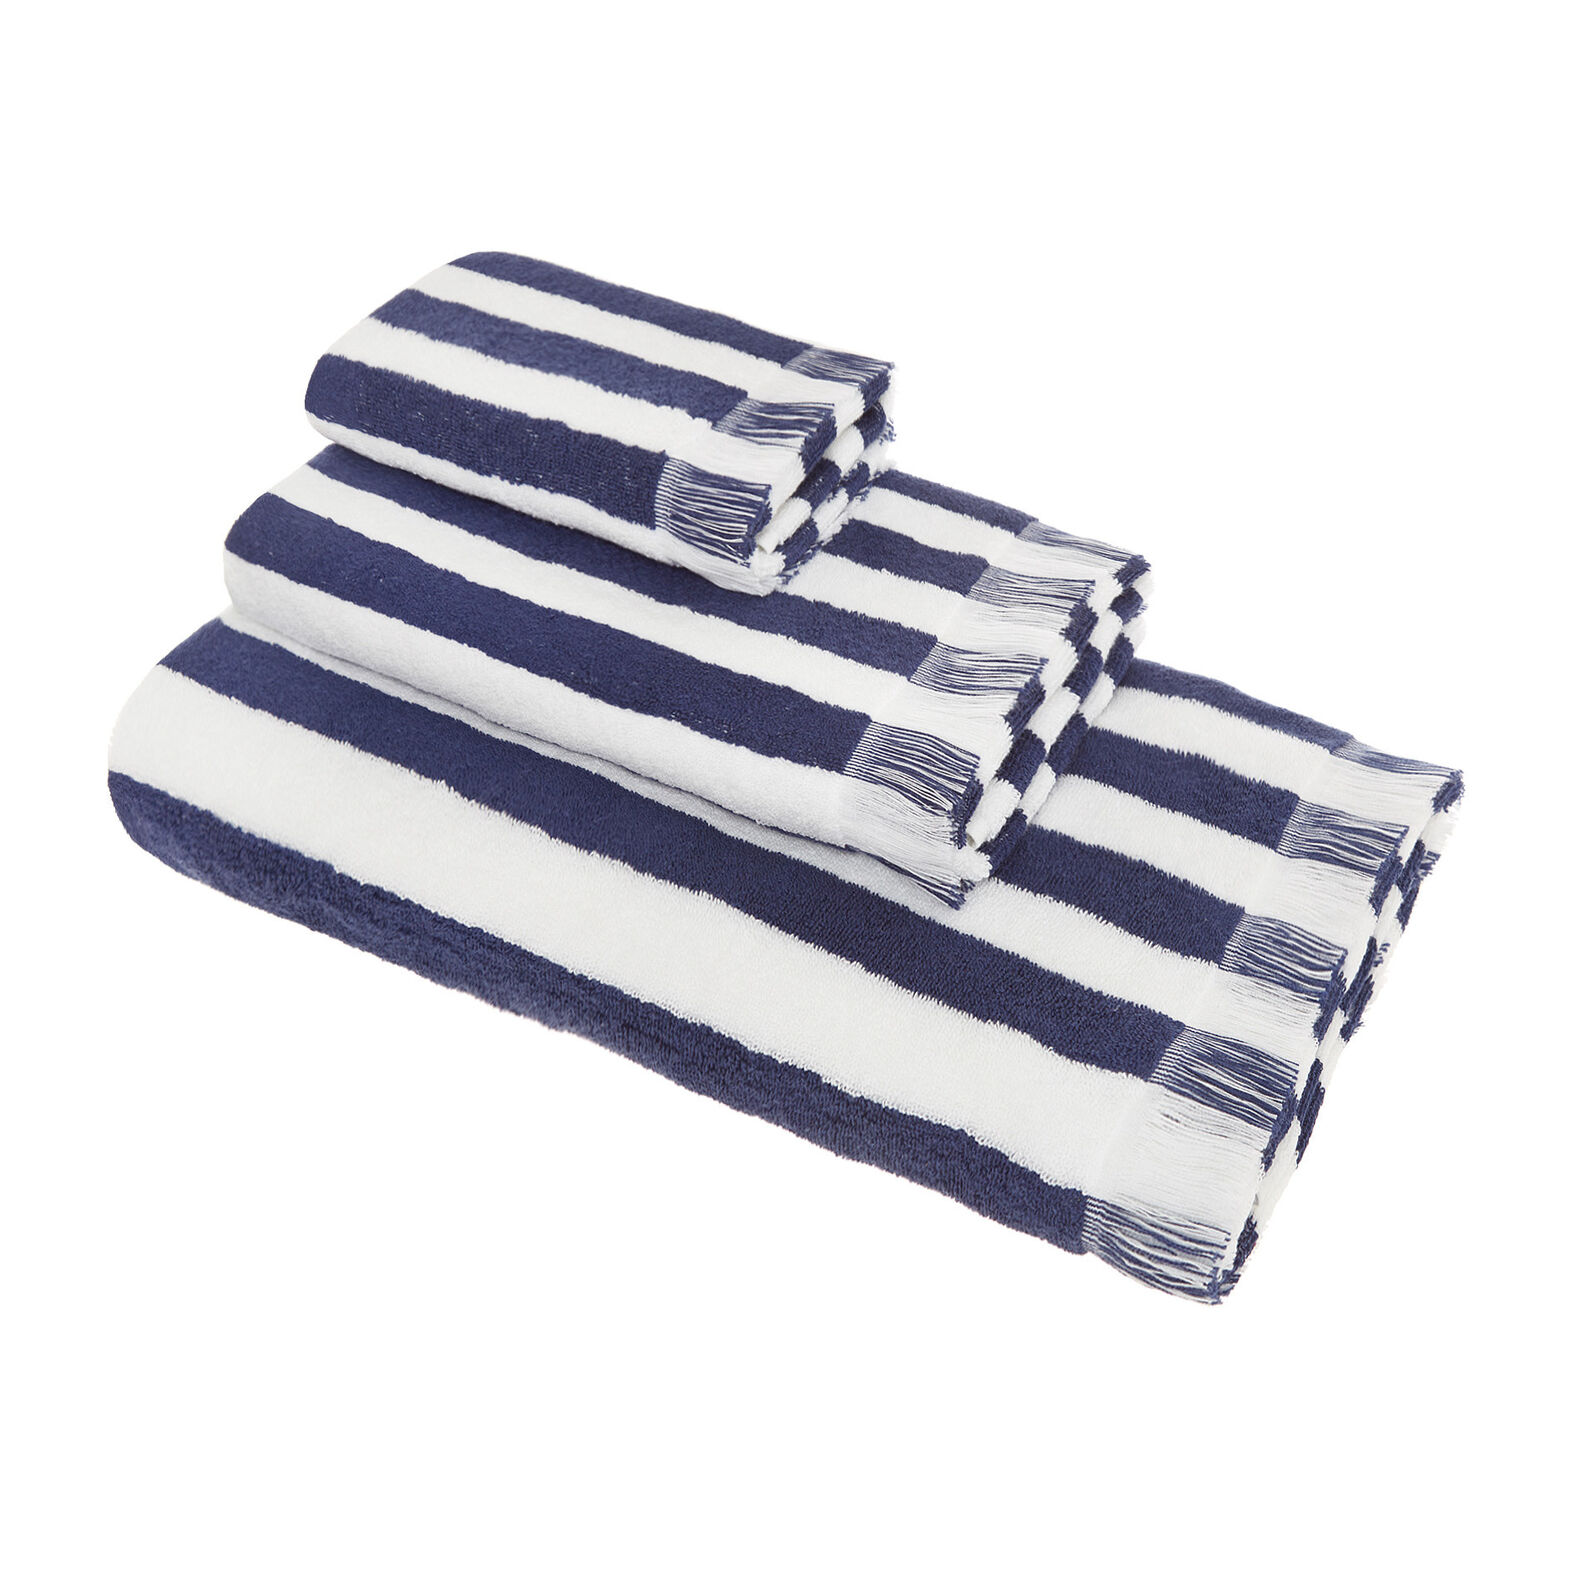 Yarn-dyed cotton towel, striped